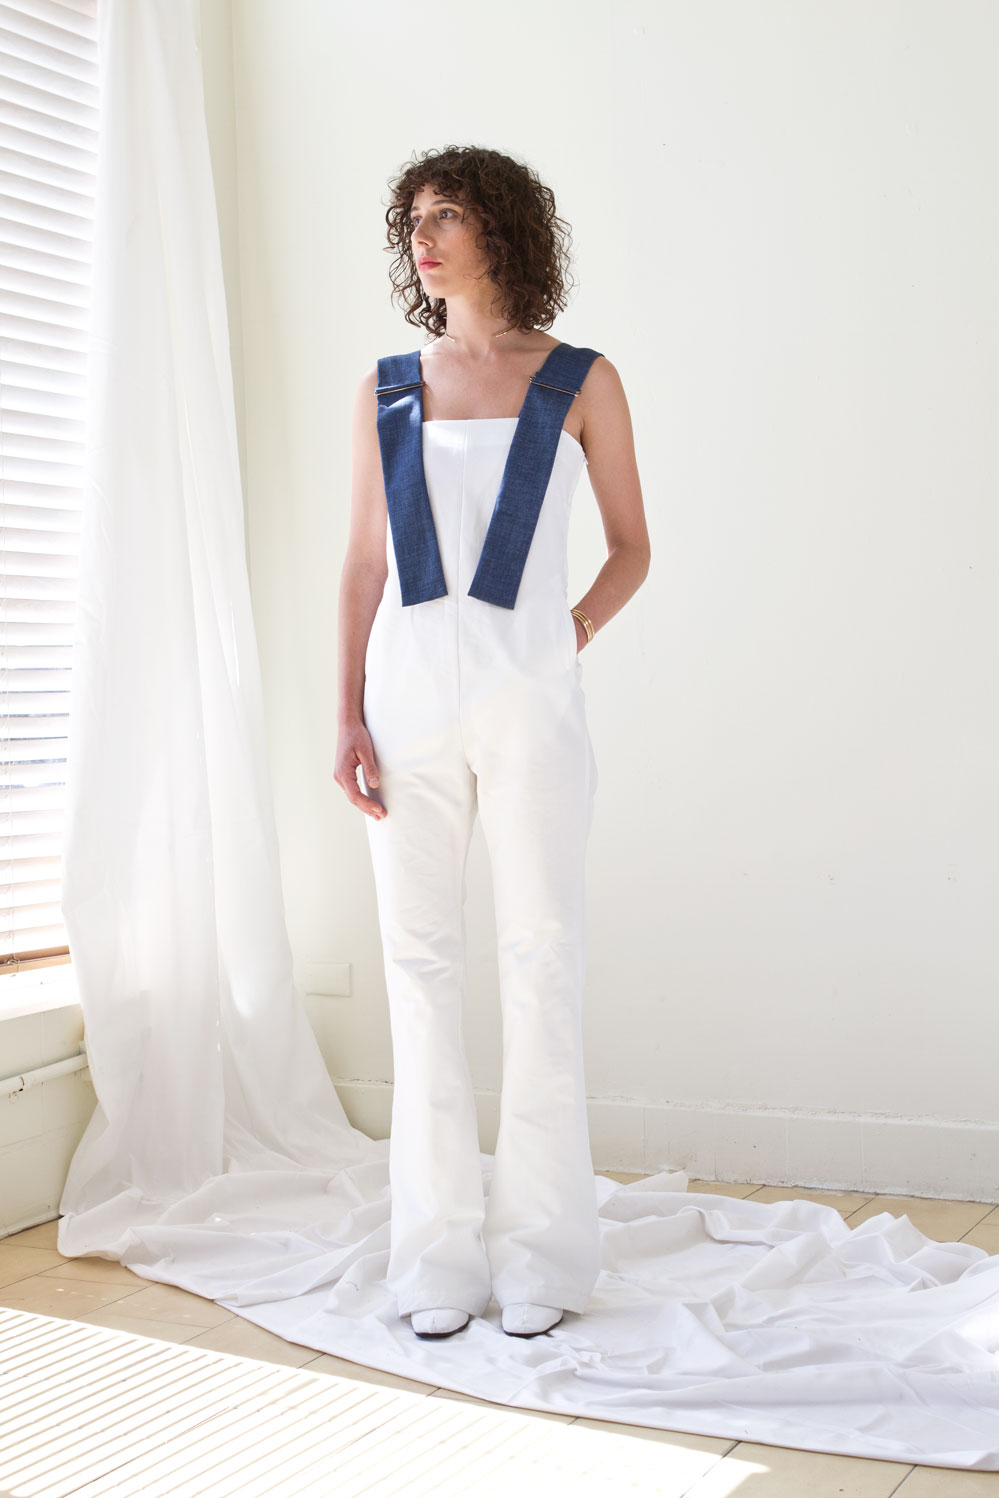 The Wave Overalls